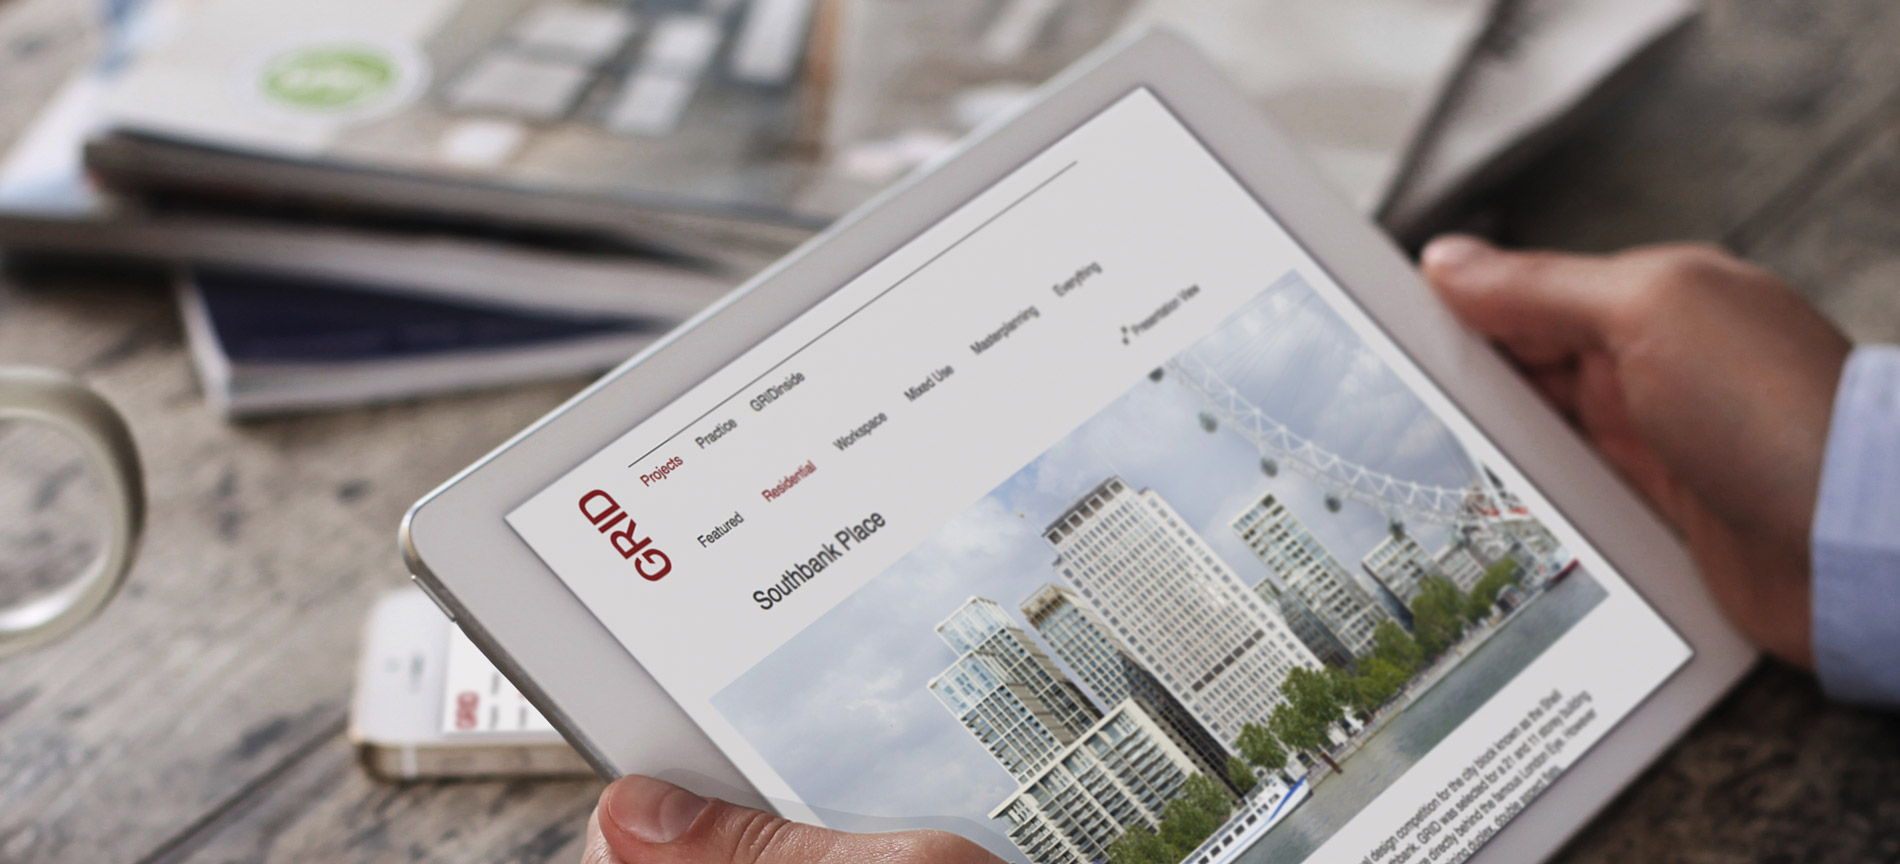 The GRID Architects website on an iPad - desktop